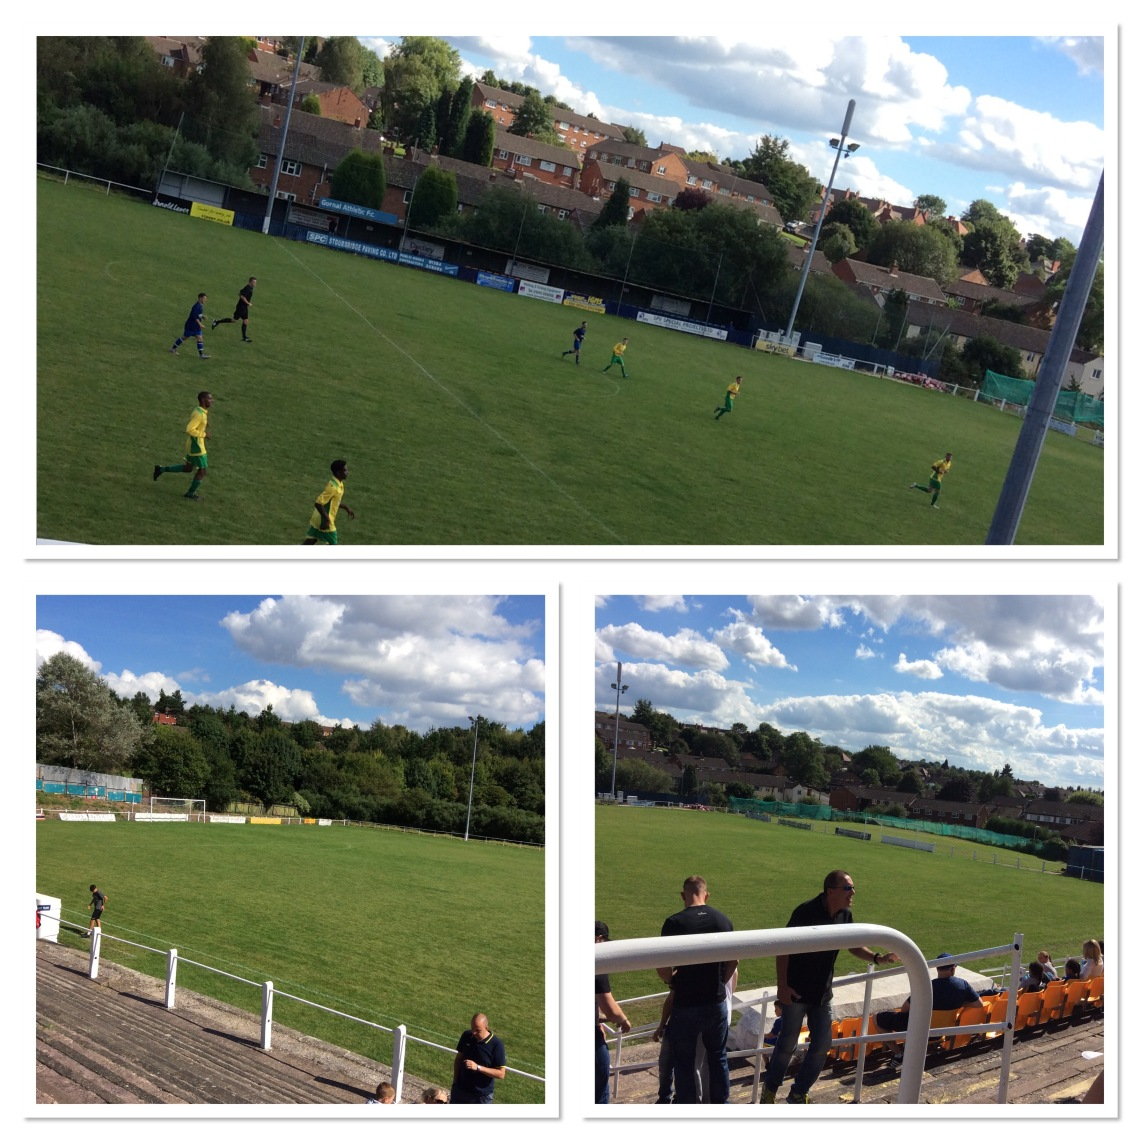 The Bank Holiday, Black Country, Gornal v Dudley derby